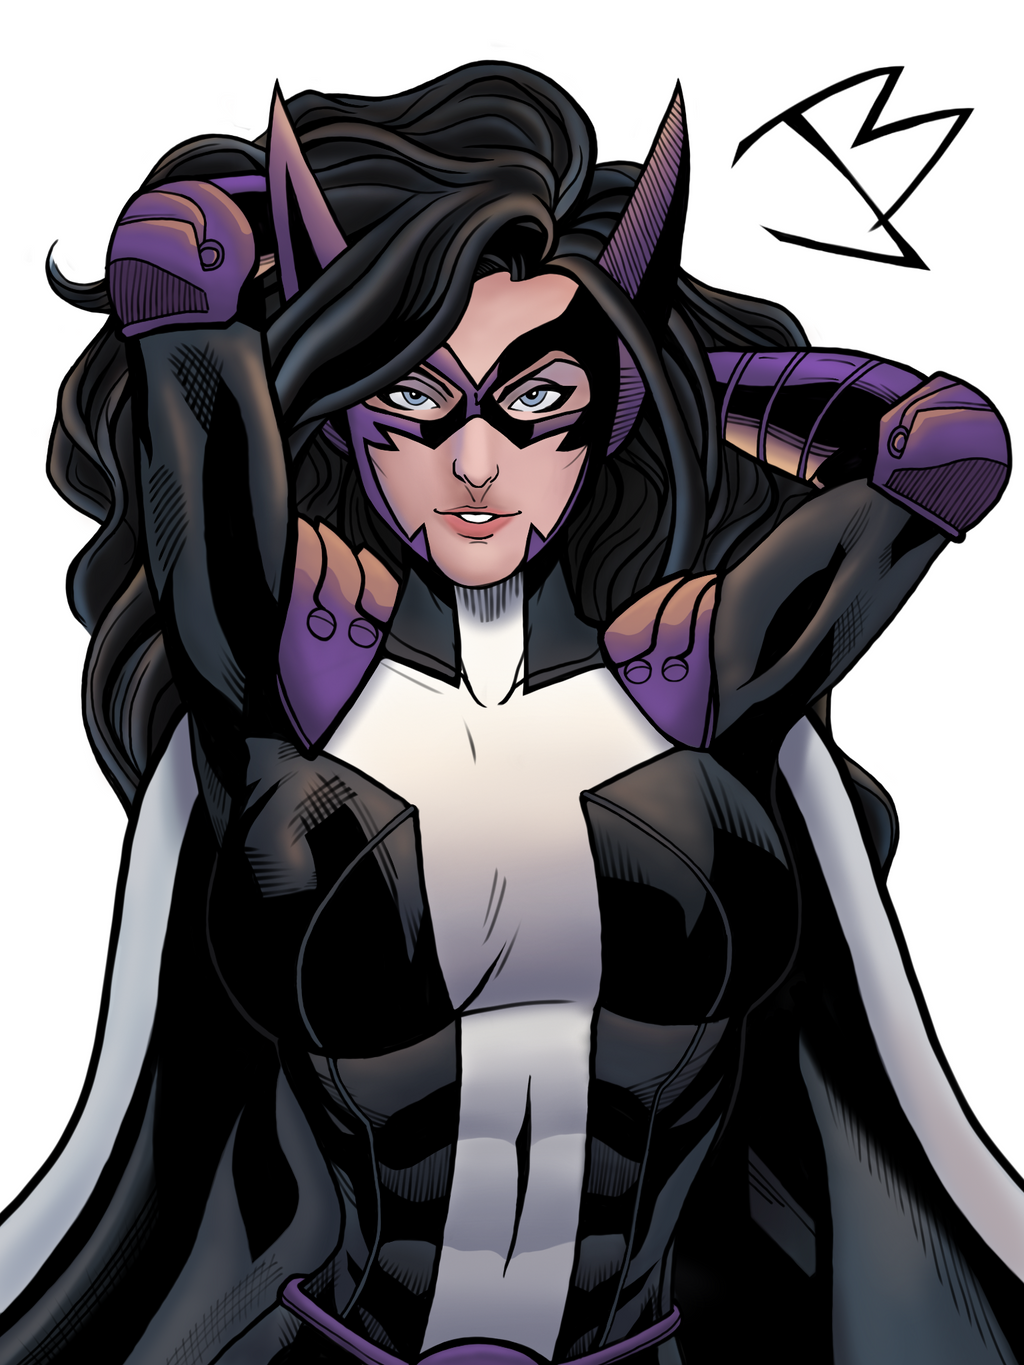 Huntress helena wayne by the great ultron on deviantart